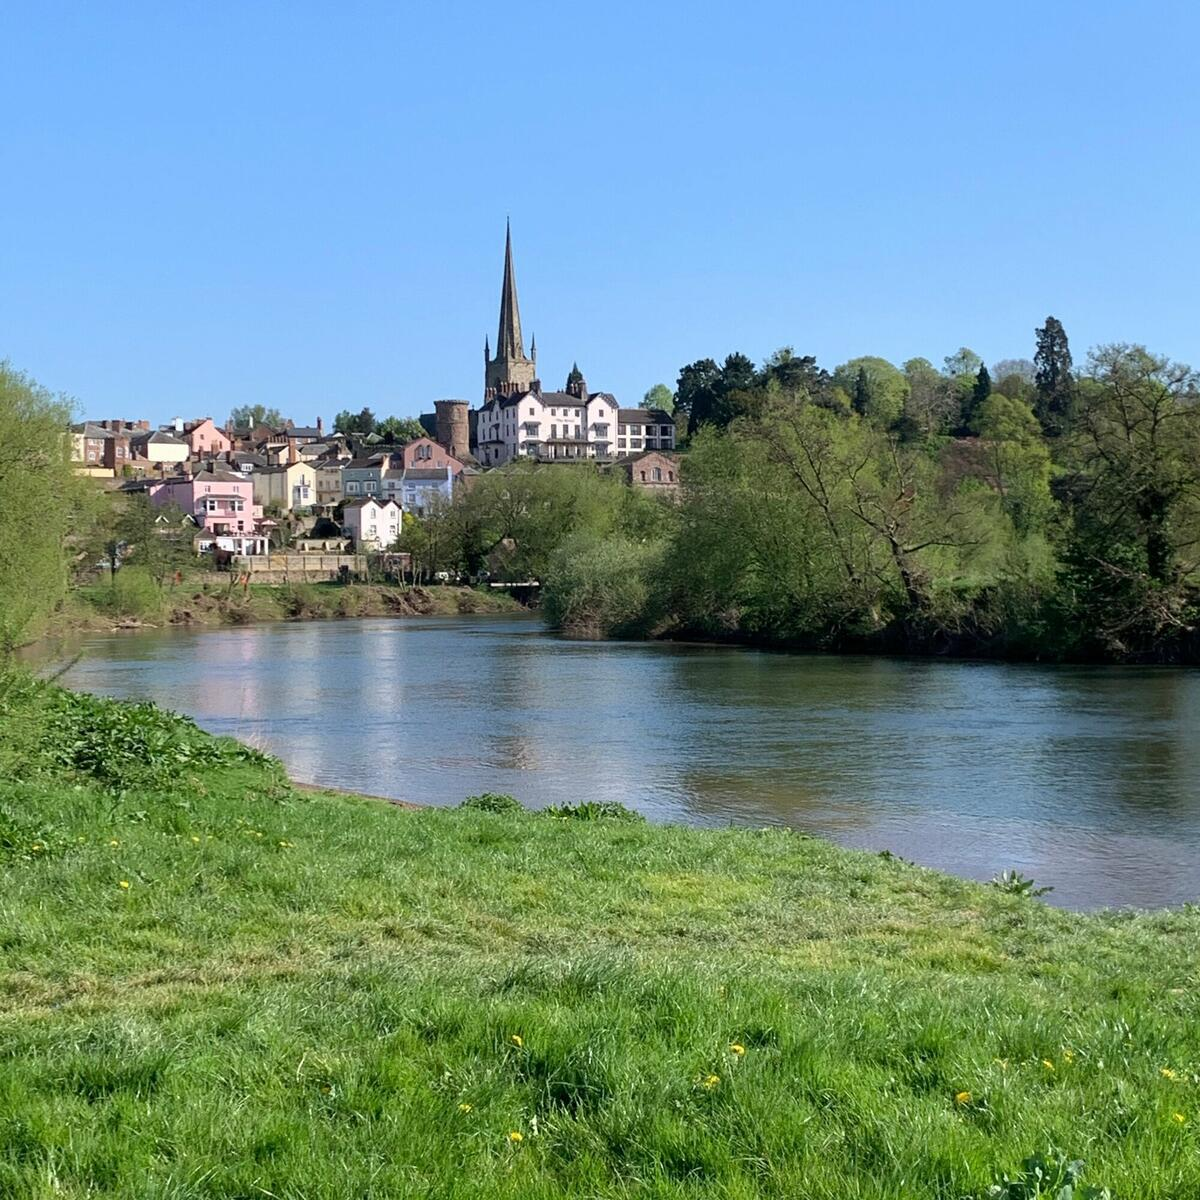 Ross-on-Wye from the riverbank